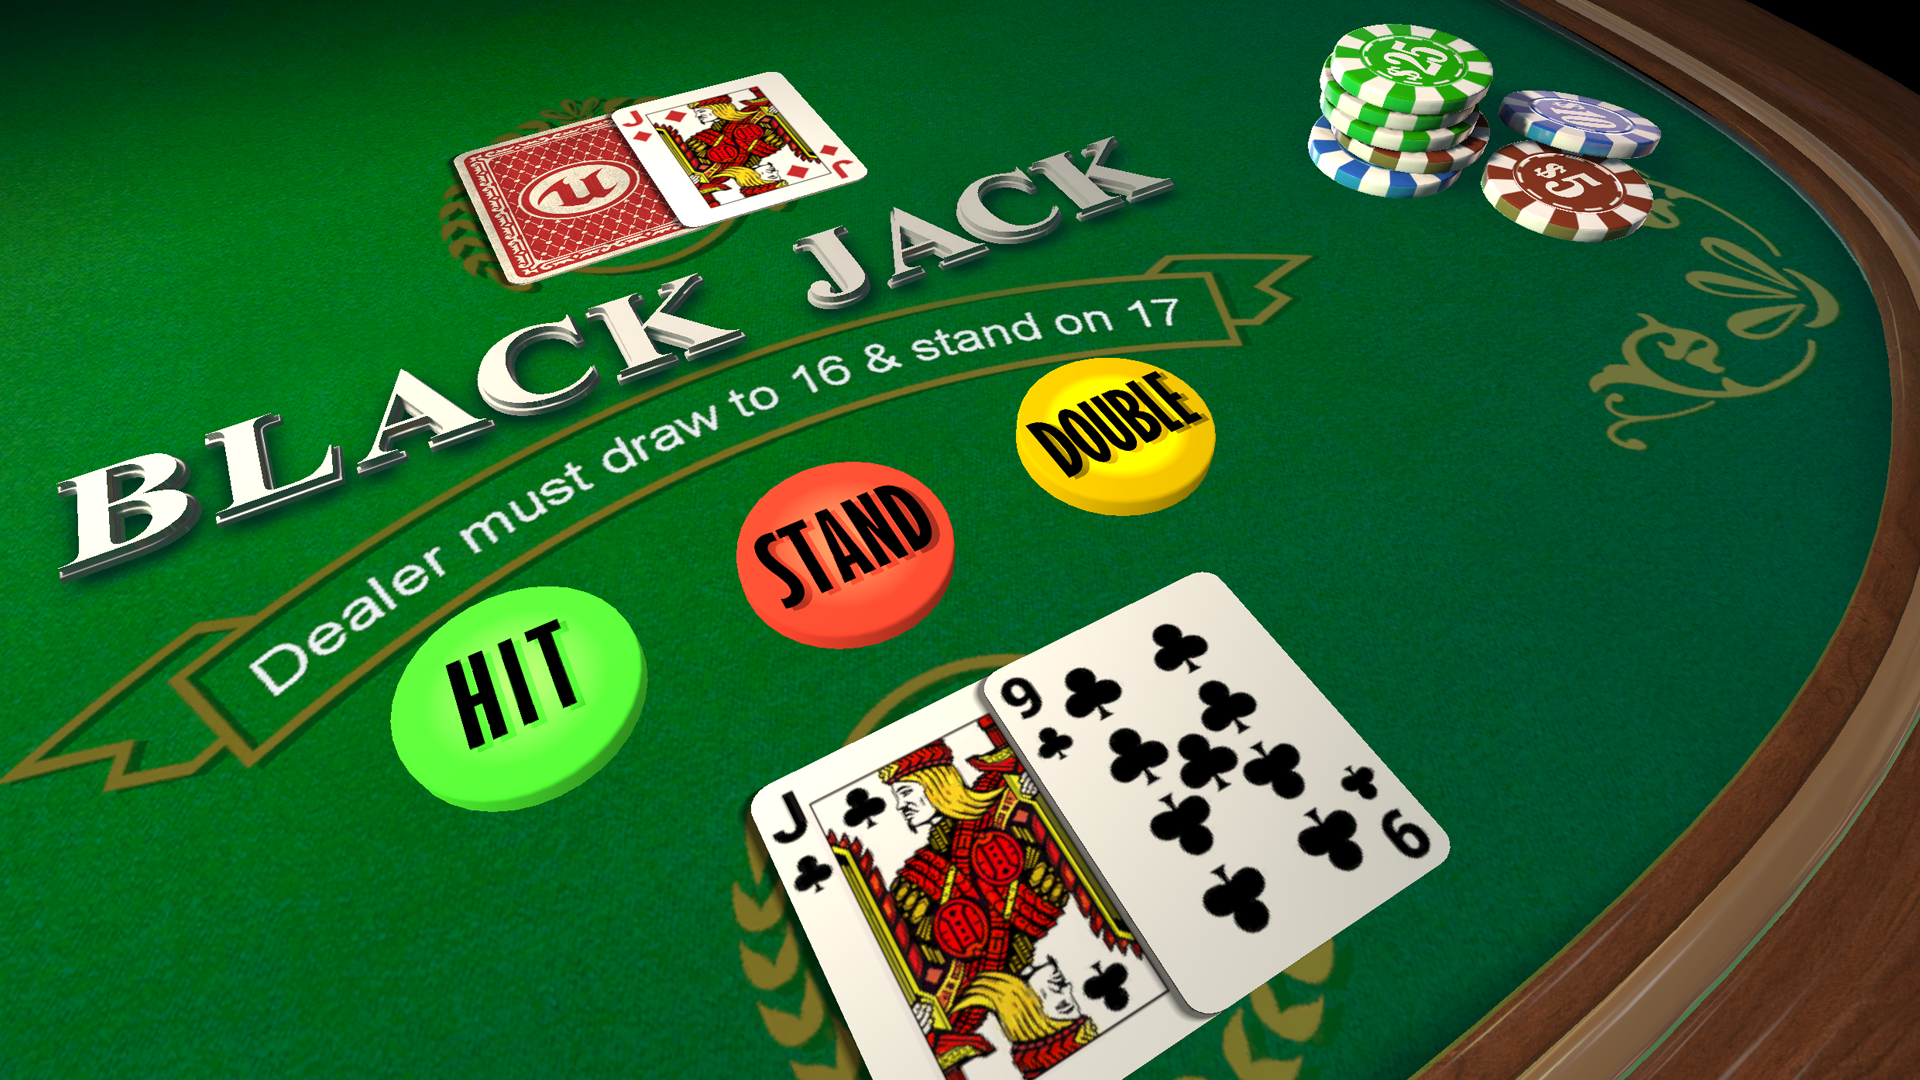 Blackjack Strategies - II